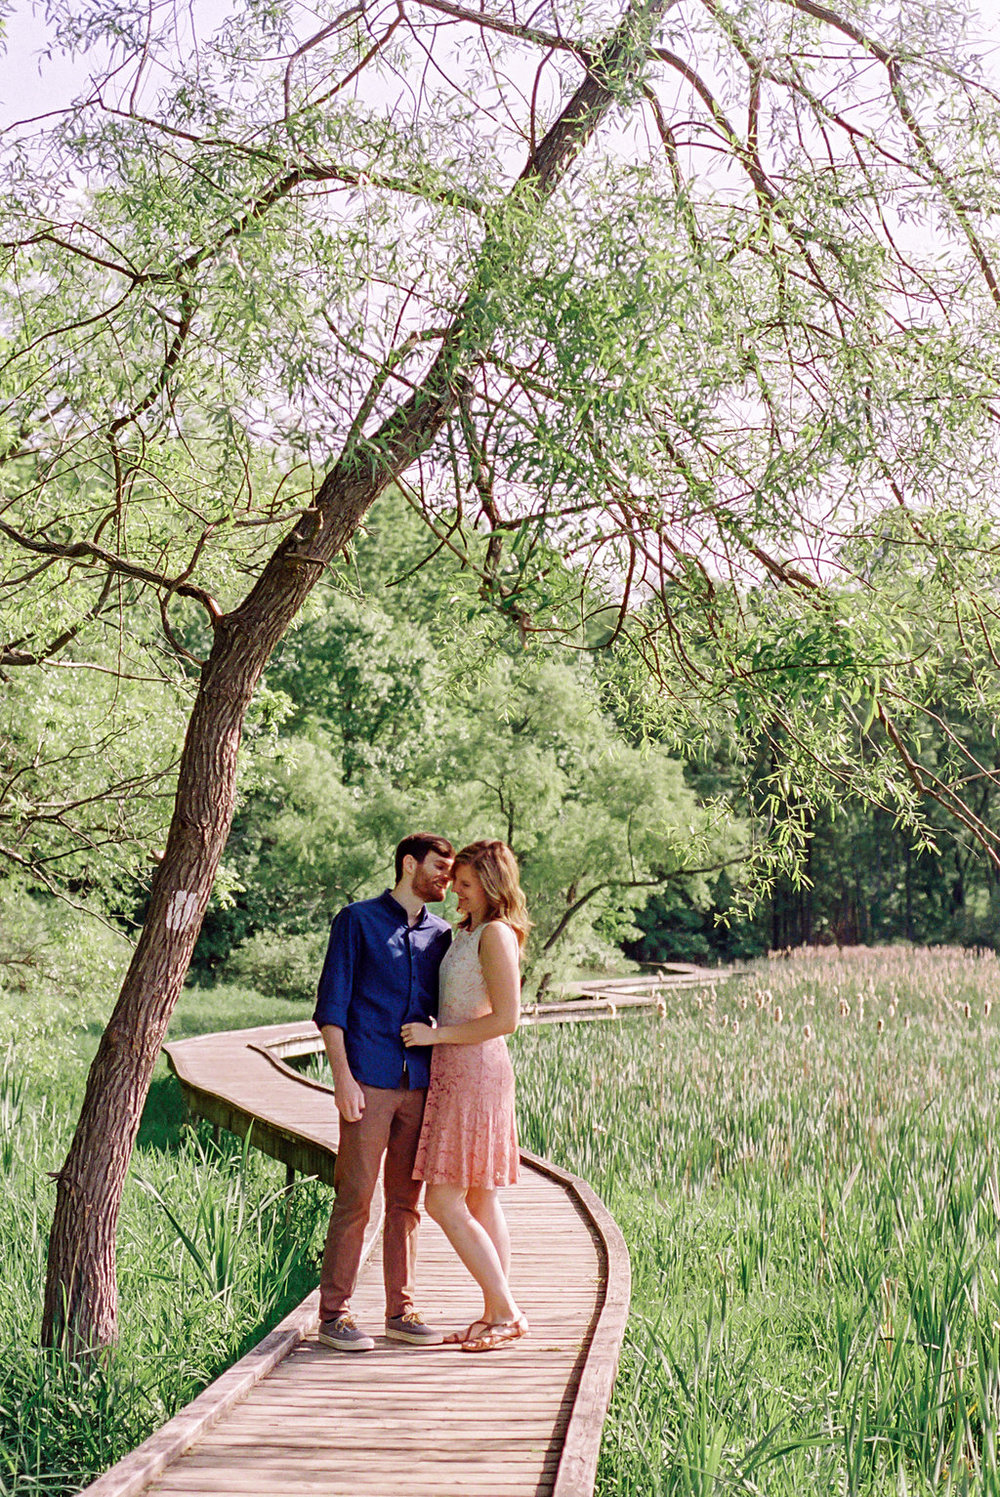 Chelsea+James-AppalachianTrailEngagementSession-NewJersey-FILM-OliviaChristinaPhoto-6 copy.jpg